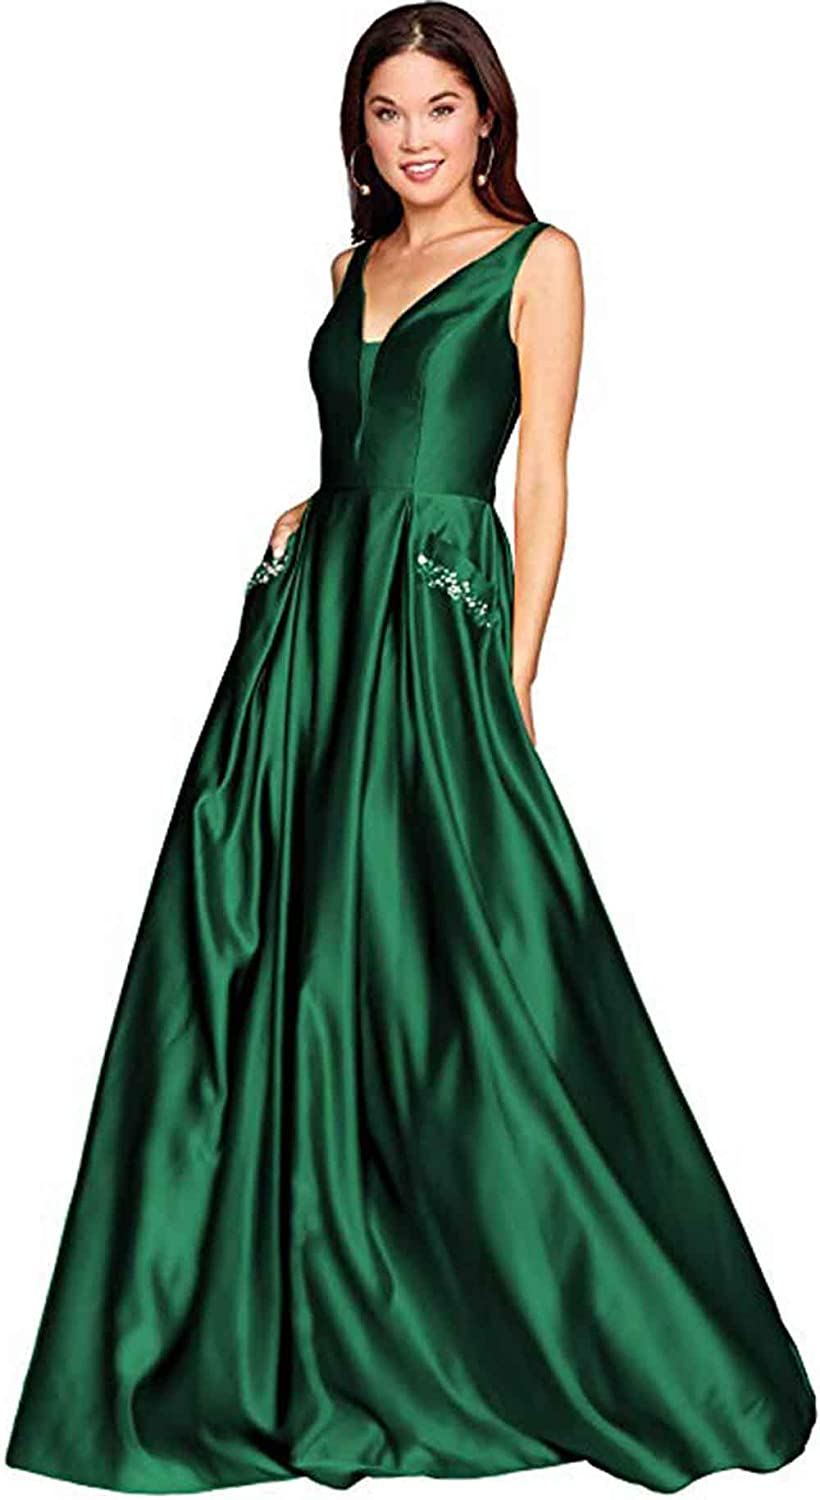 Green Rmaytiked Womens V Neck Beaded Prom Dresses Long Satin A Line Formal Evening Ball Gowns with Pockets